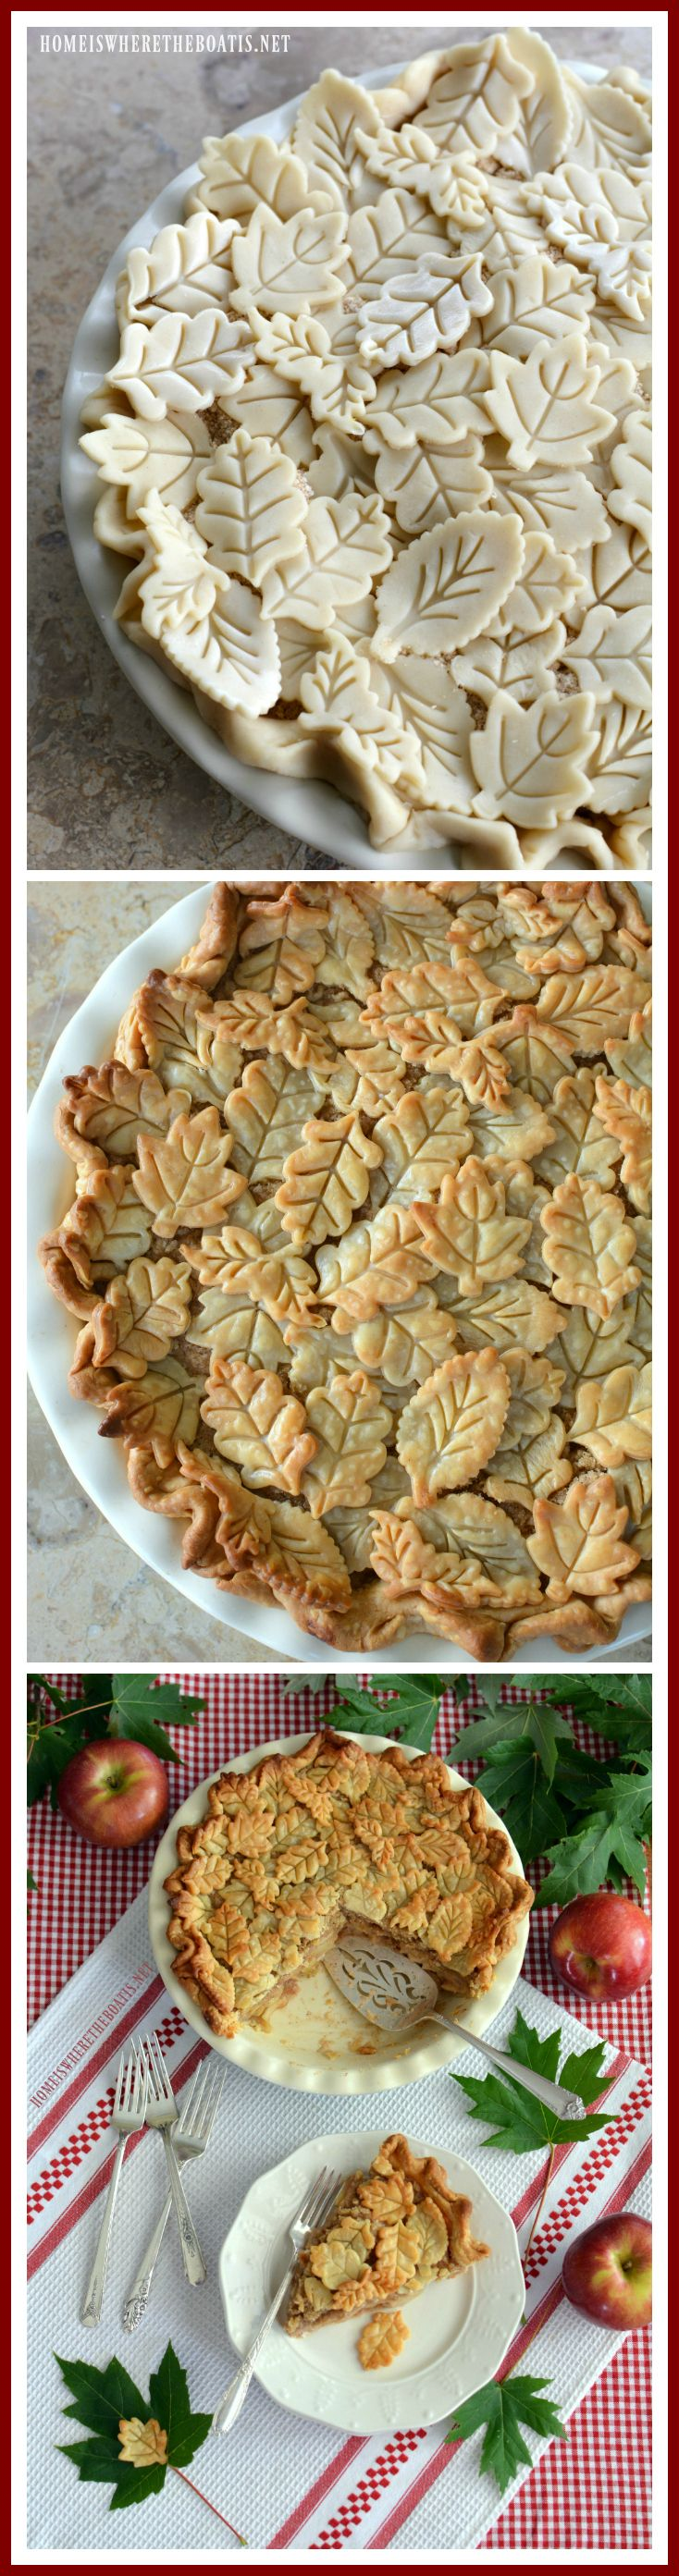 Apple Pie with pie crust leaf embellishments | homeiswheretheboatis.net #recipe…